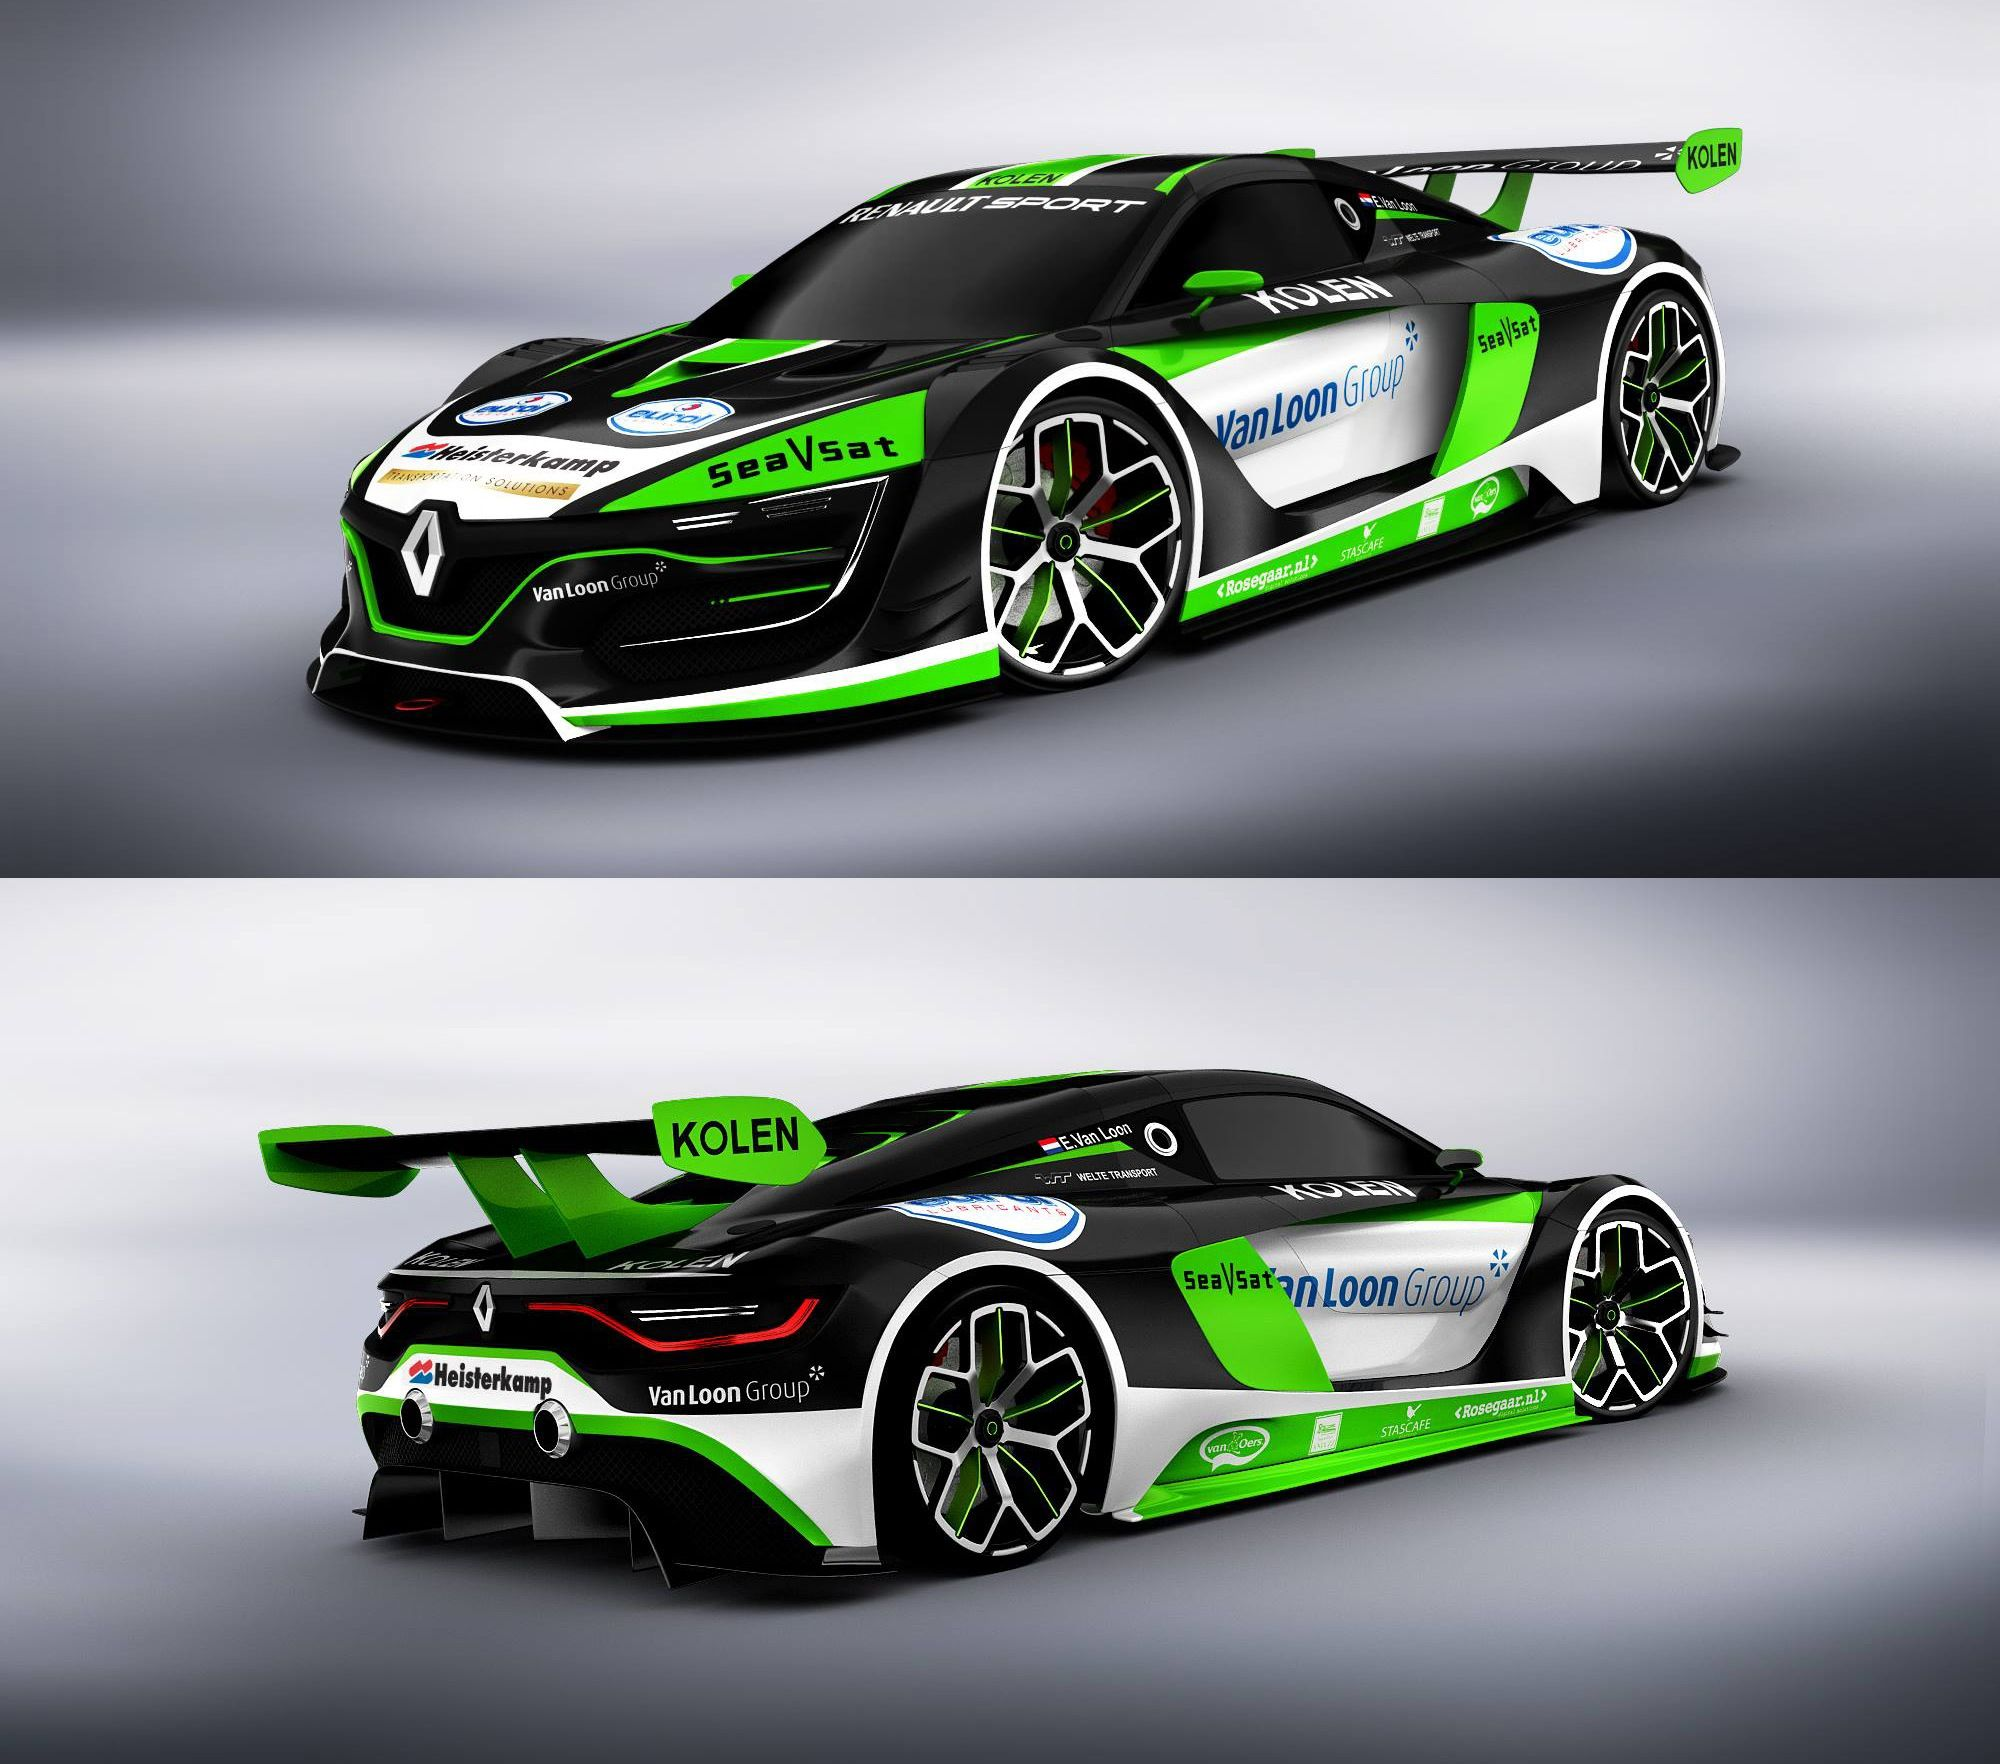 Renault sport r s 01 racing livery we collect and generate ideas ufx dk